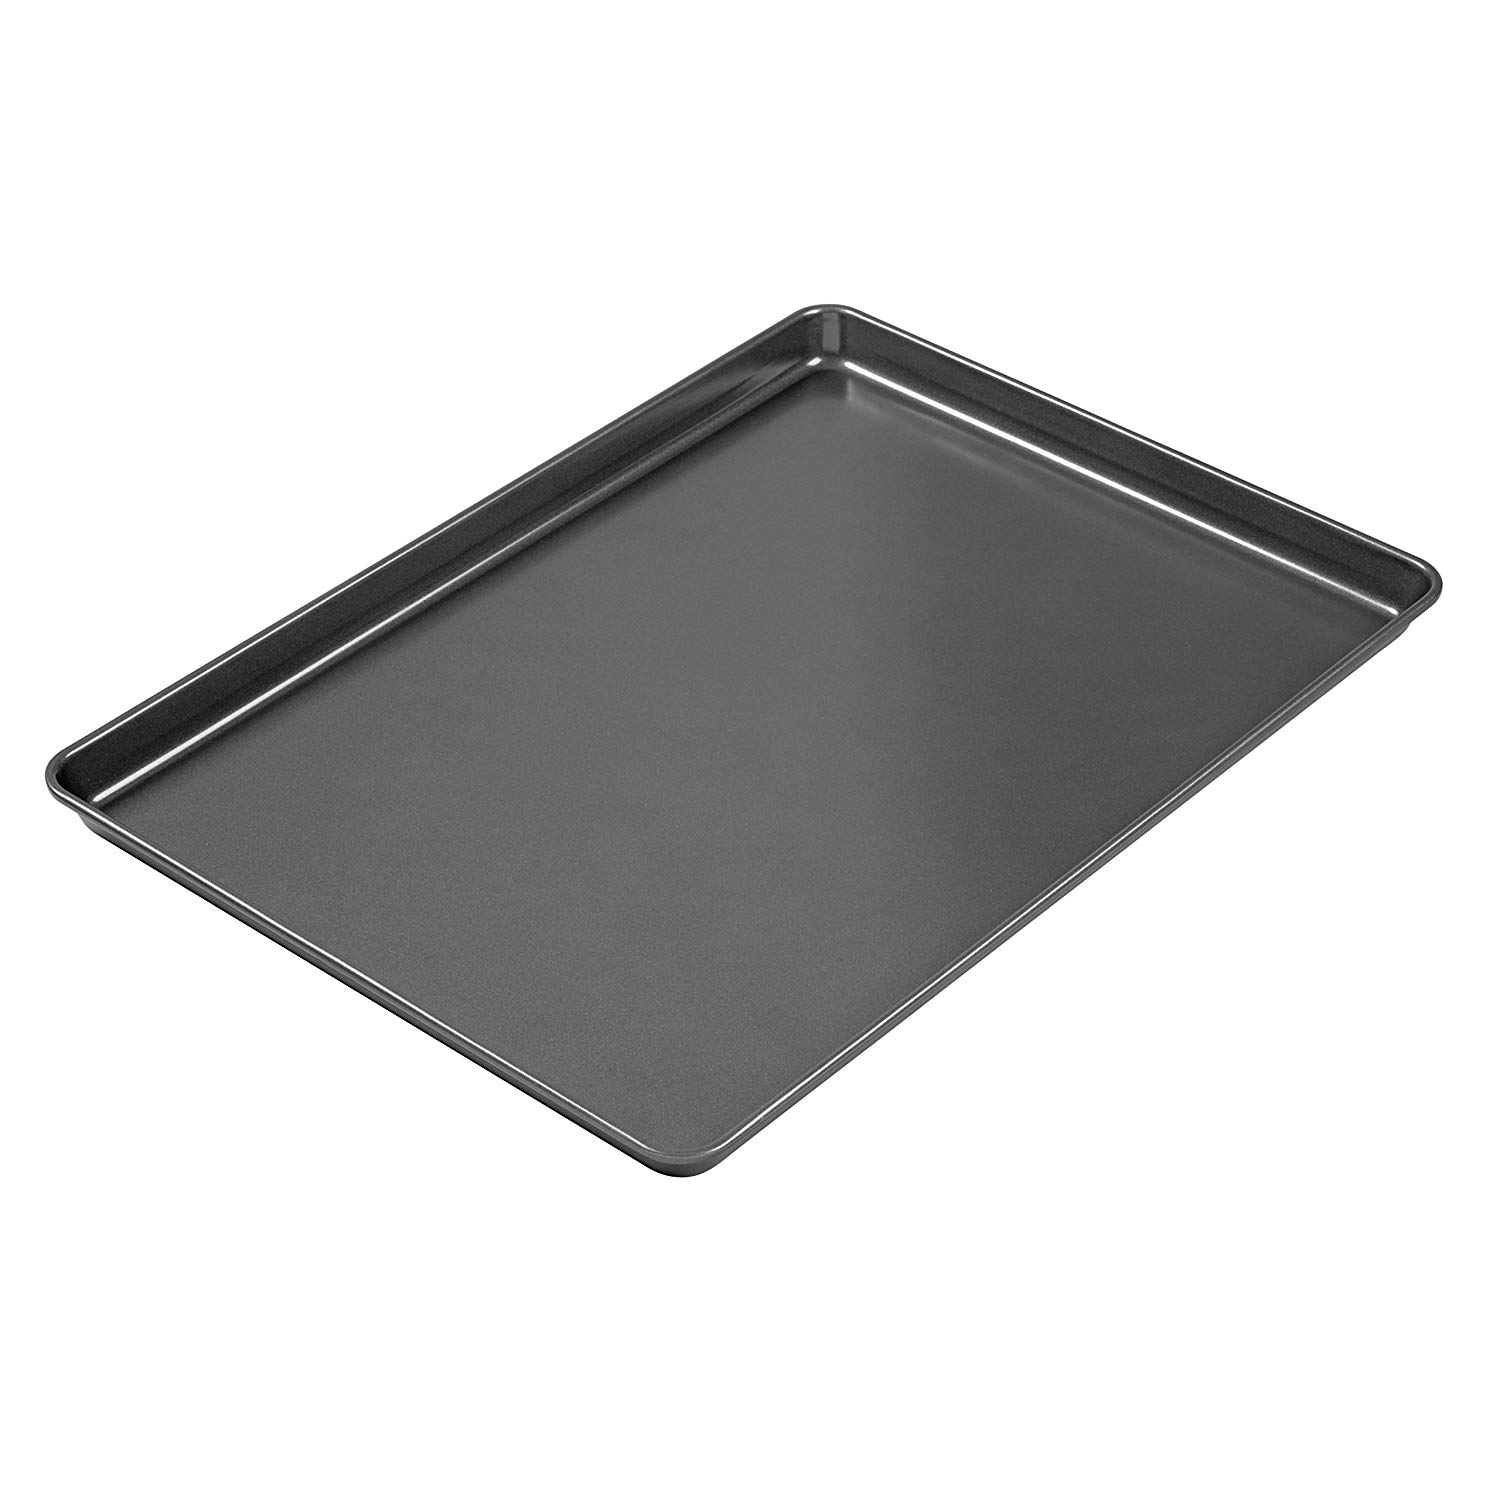 Wilton 2105-0109 perfect results premium non-stick bakeware mega cookie pan